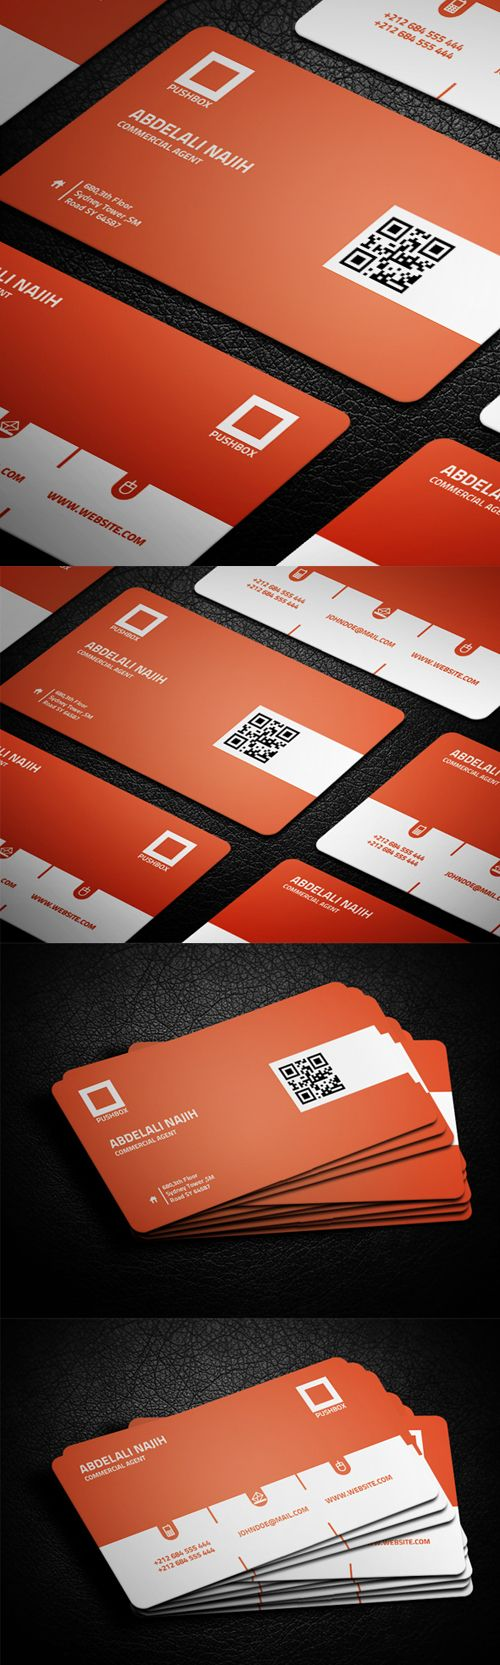 Best 25 qr code business card ideas on pinterest sample 15 amazing business cards templates design 2014graphic design magazine graphic design magazine magicingreecefo Gallery